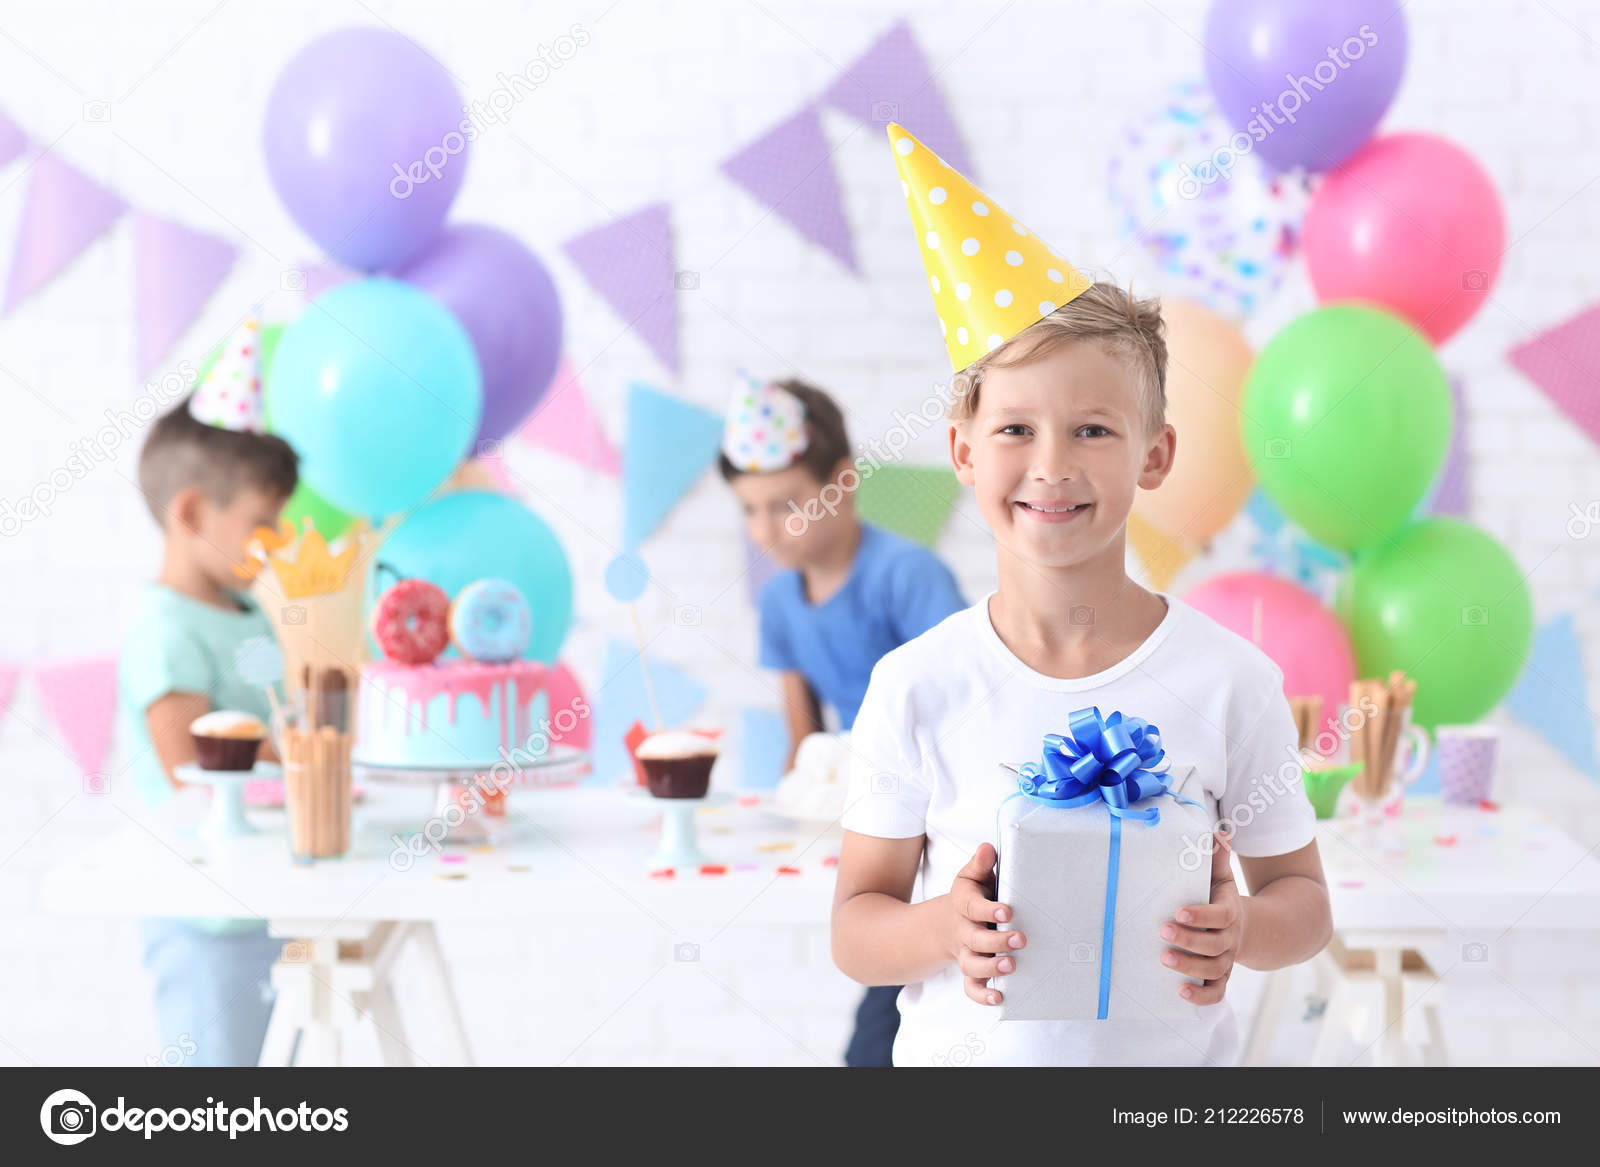 Cute Little Boy Birthday Gift Party Stock Image